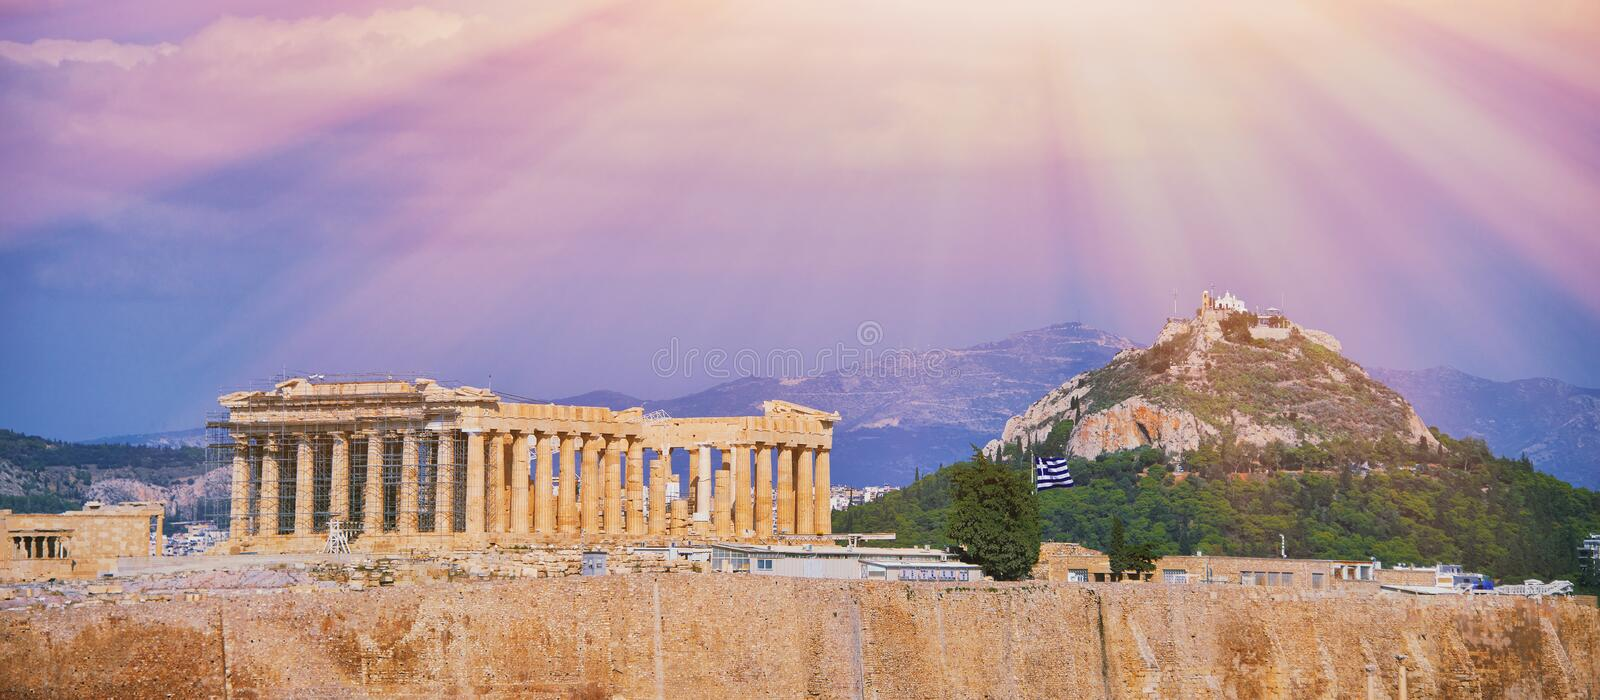 Parthenon temple in Acropolis Hill in Athens, Greece shot in sunny day afternoon with clouds in blue sky over the old town during royalty free stock photo